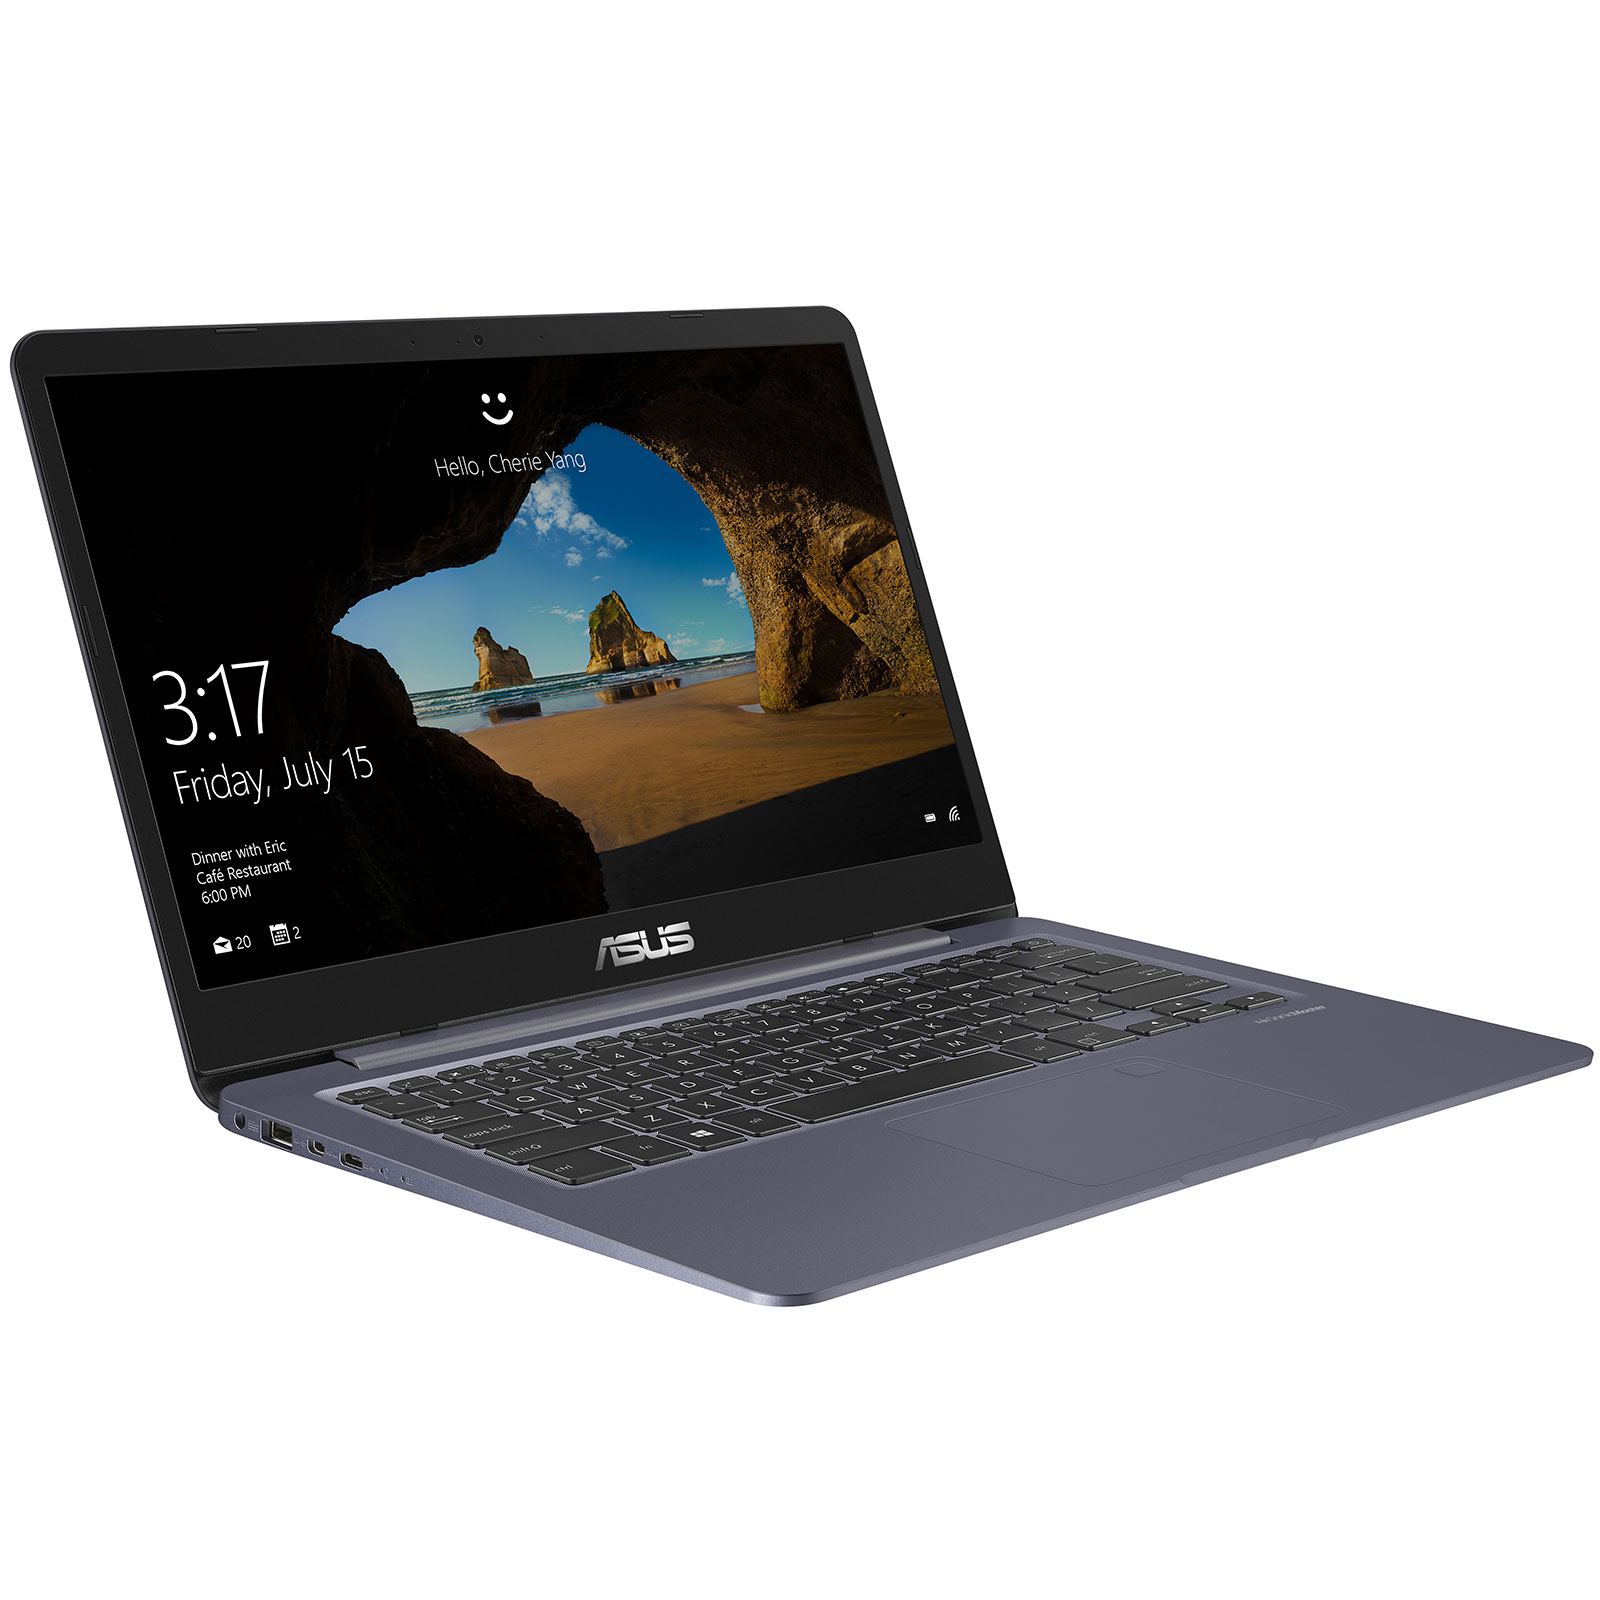 "PC portable ASUS Vivobook S14 S406UA-BM013T Intel Core i5-8250U 8 Go SSD 256 Go 14"" LED Full HD Wi-Fi AC/Bluetooth Webcam Windows 10 Famille 64 bits (garantie constructeur 2 ans)"